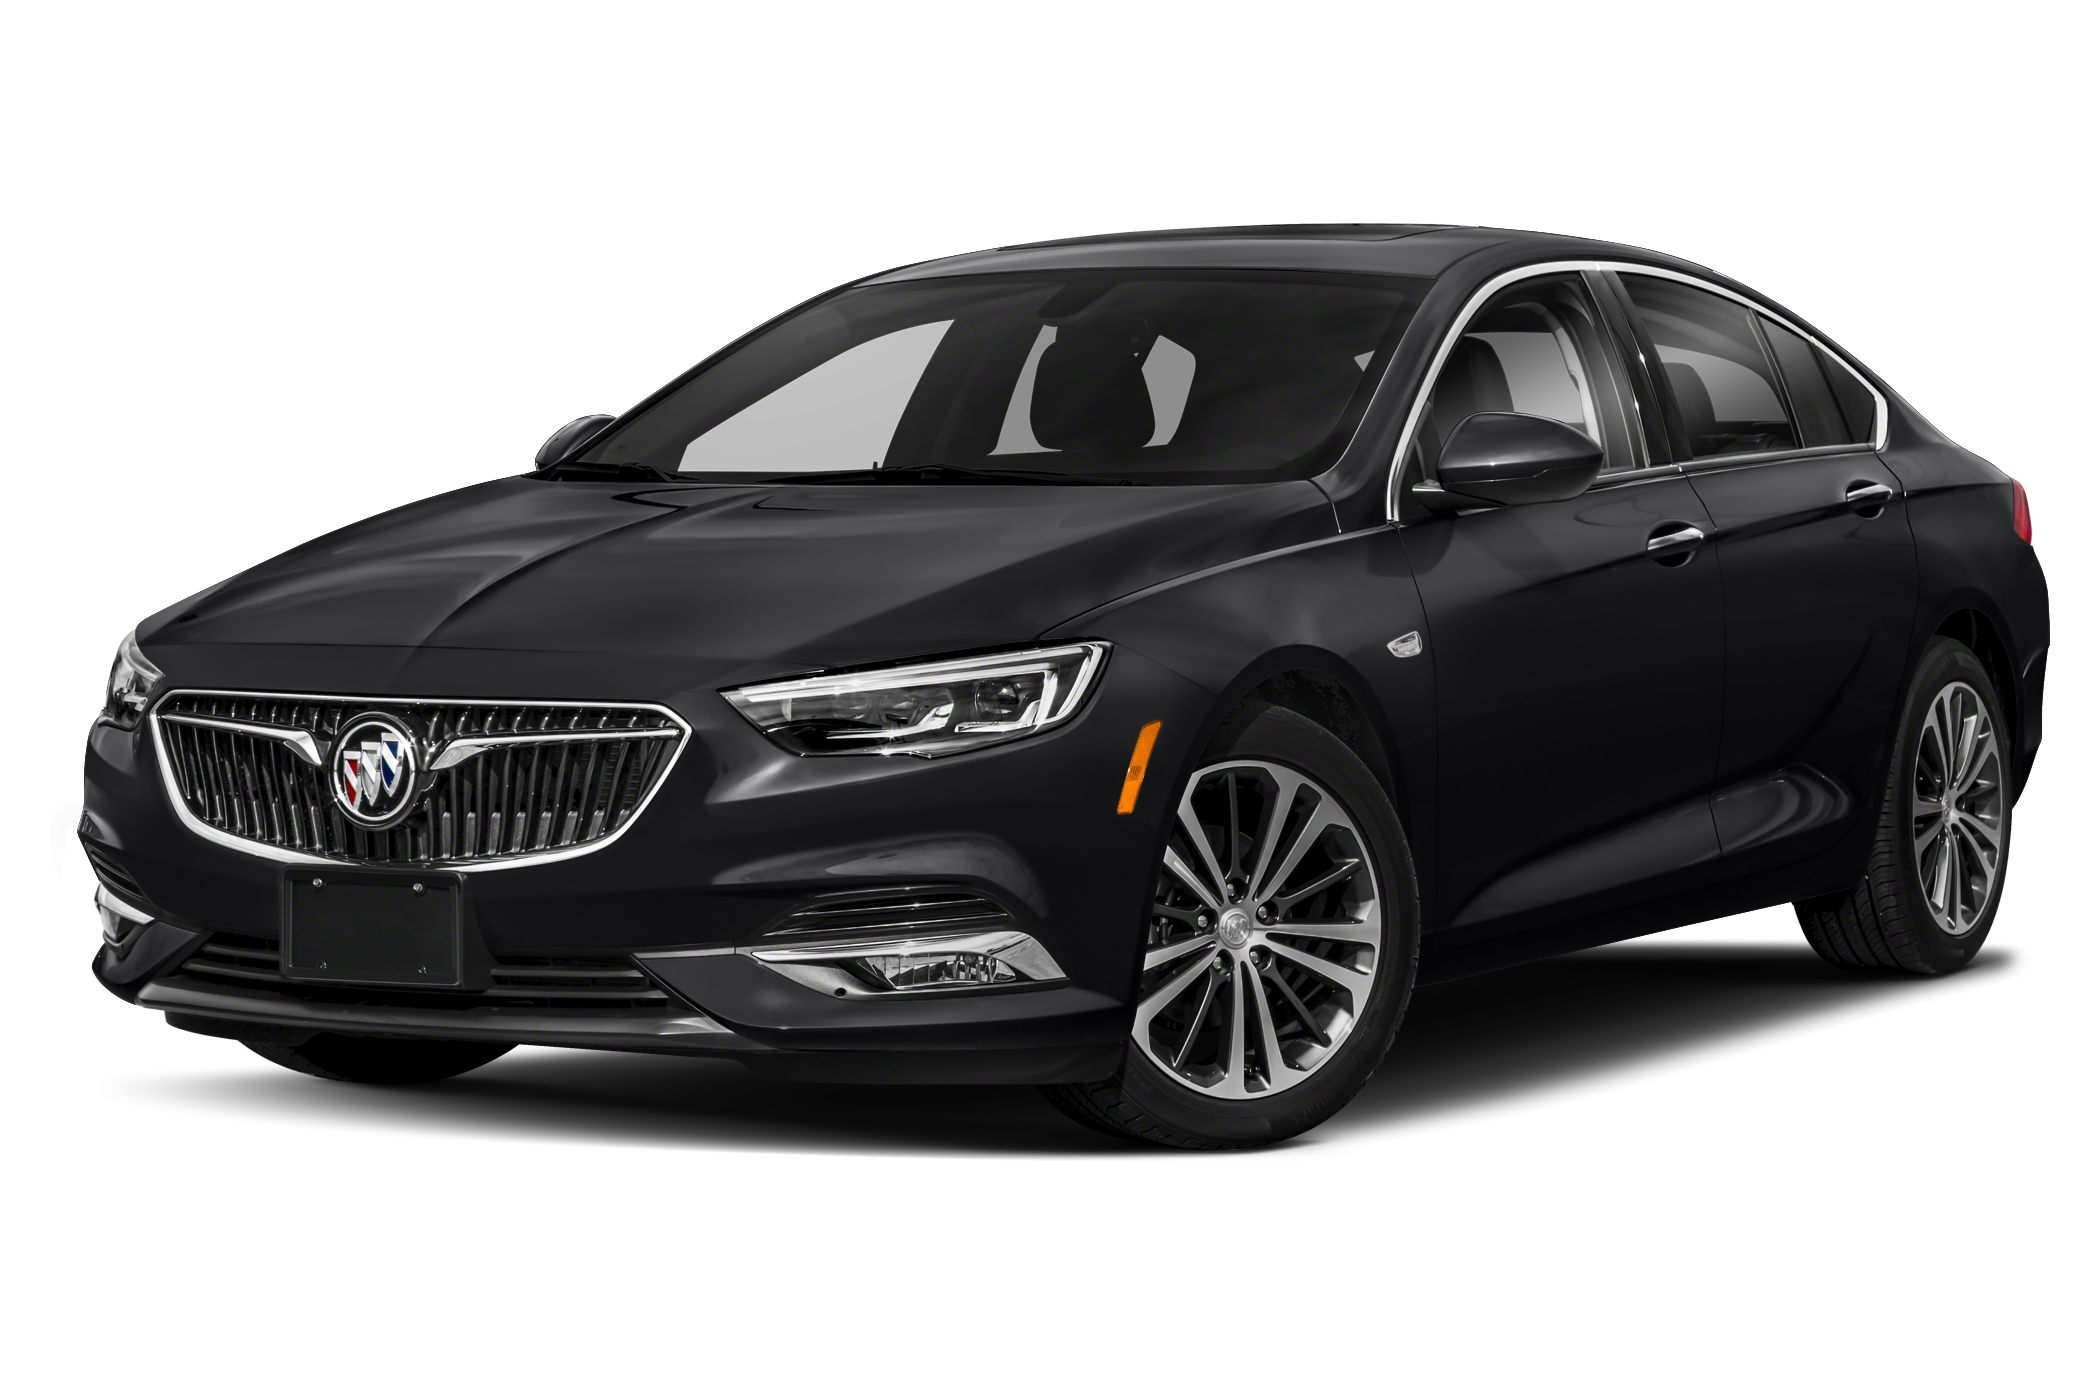 13 All New 2020 Buick Regal Sportback Prices by 2020 Buick Regal Sportback